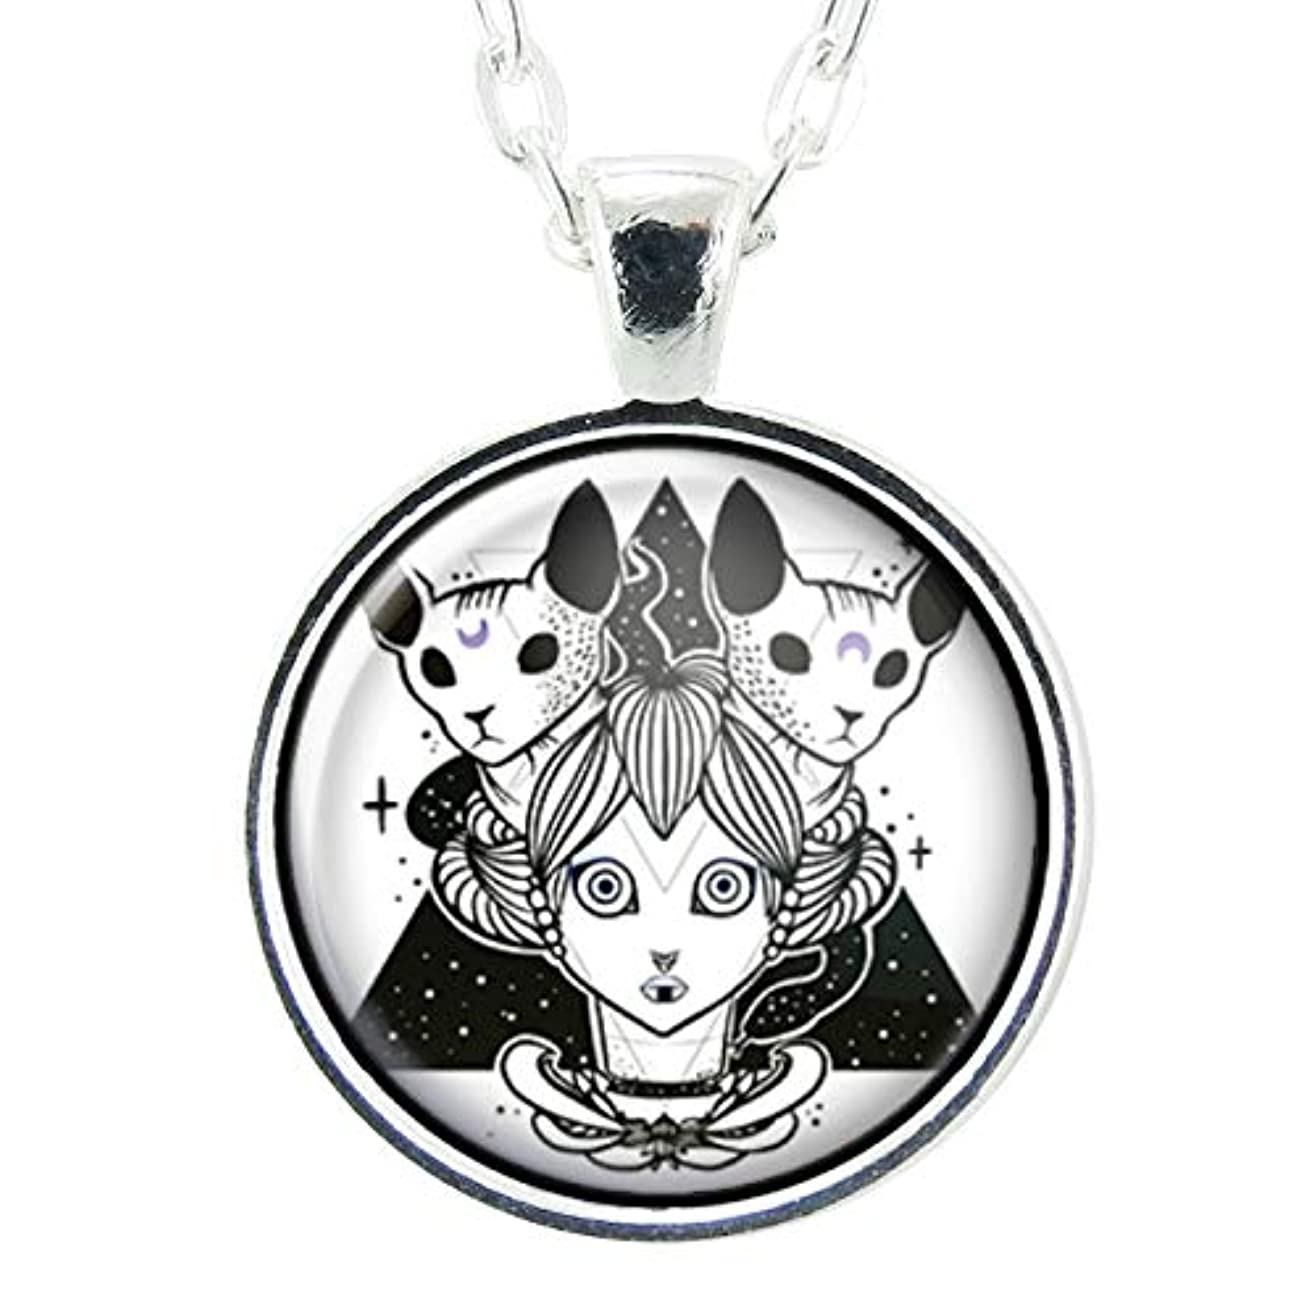 Witch And Sphynx Cat Artwork, Handmade Art Pendant, 1 Inch Charm On 24 Inch Necklace Chain